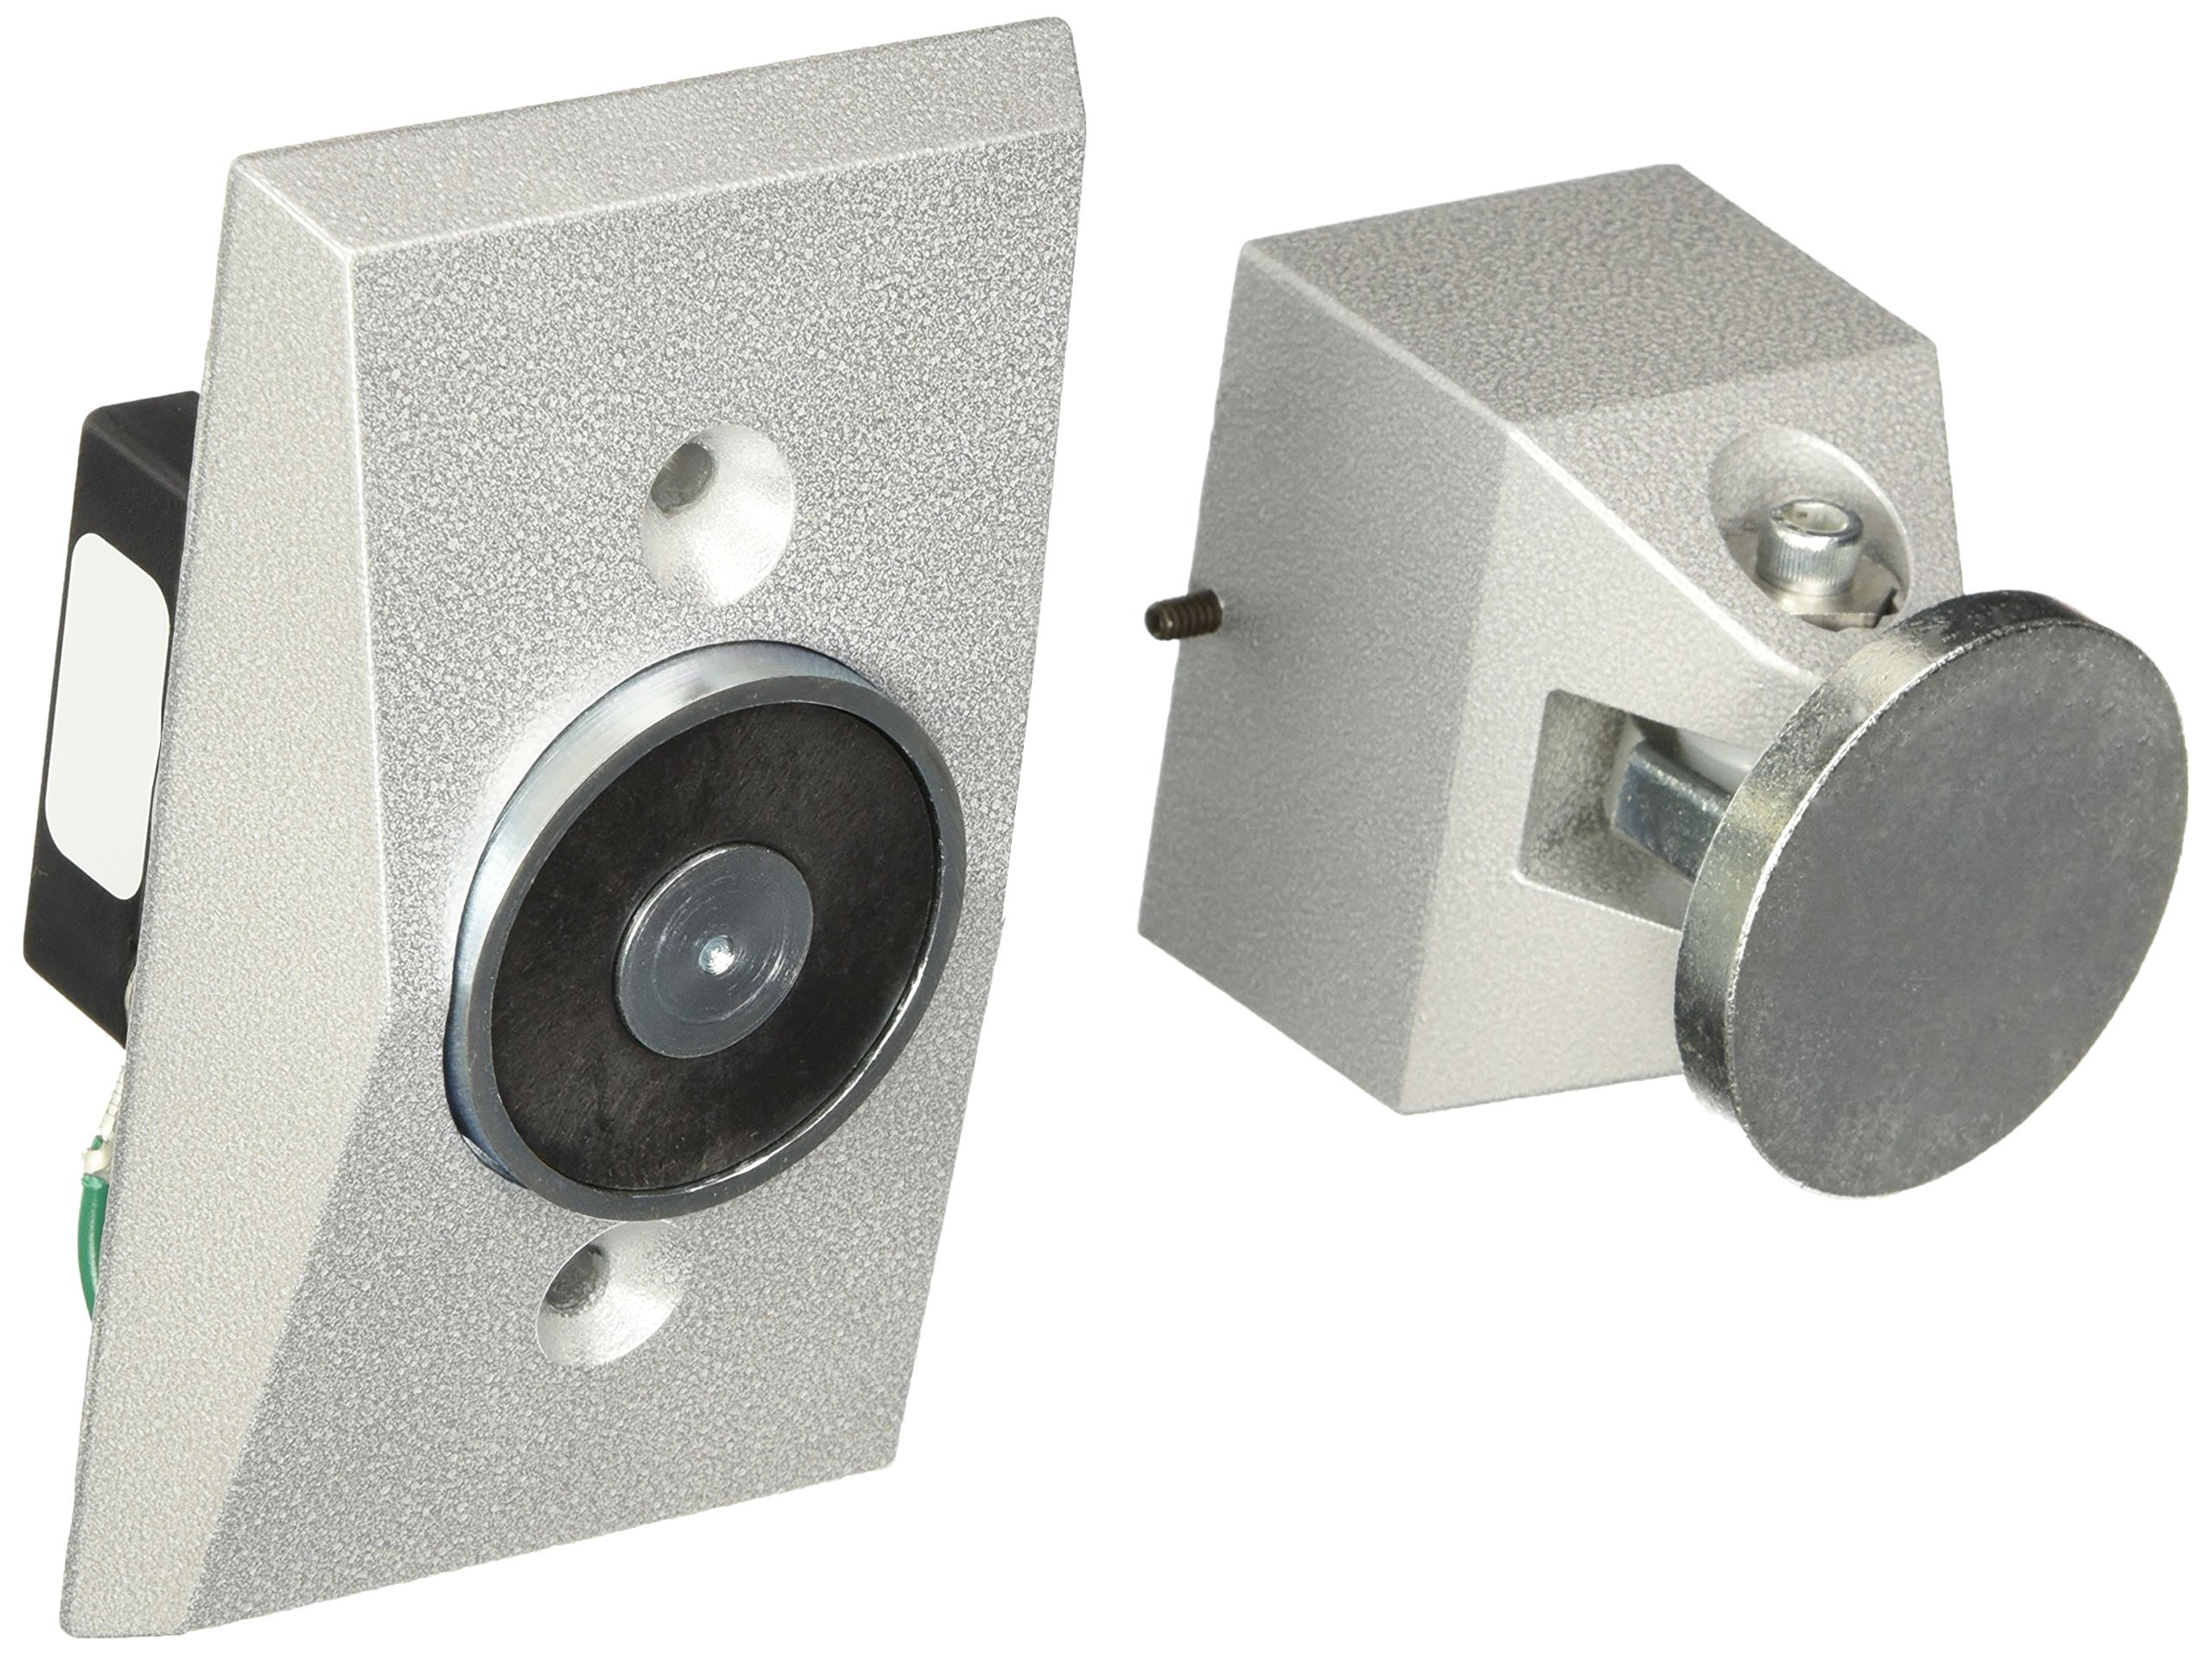 Edwards Signaling 1504-AQN5 Electromagnetic Door Holder Flush Wall Mount by Edwards-Signaling (Image #1)